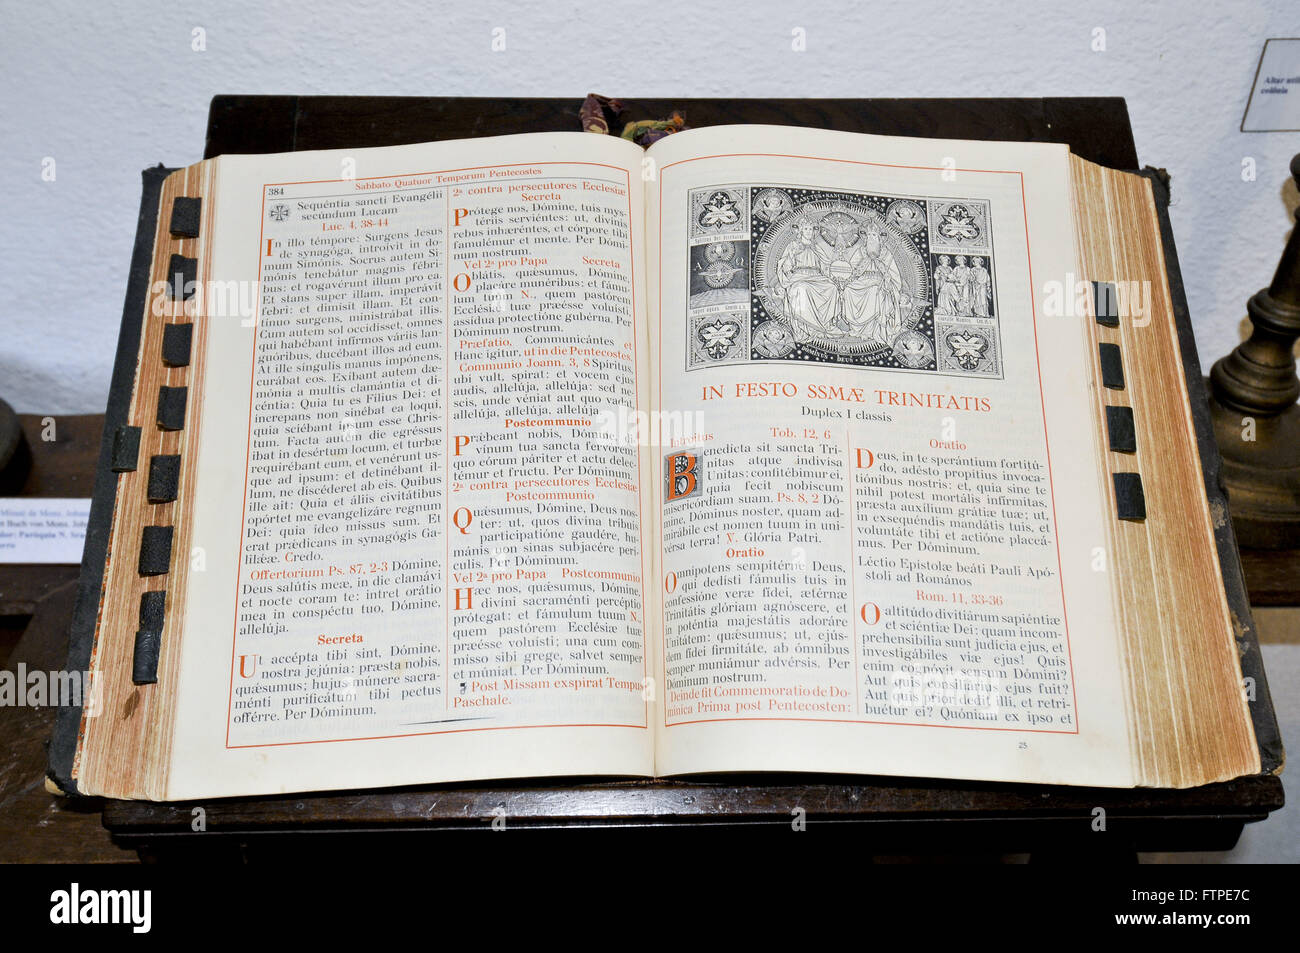 Bible written in Latin in the exhibition Little Castle - Municipal Museum Andreas Thaler - Stock Image